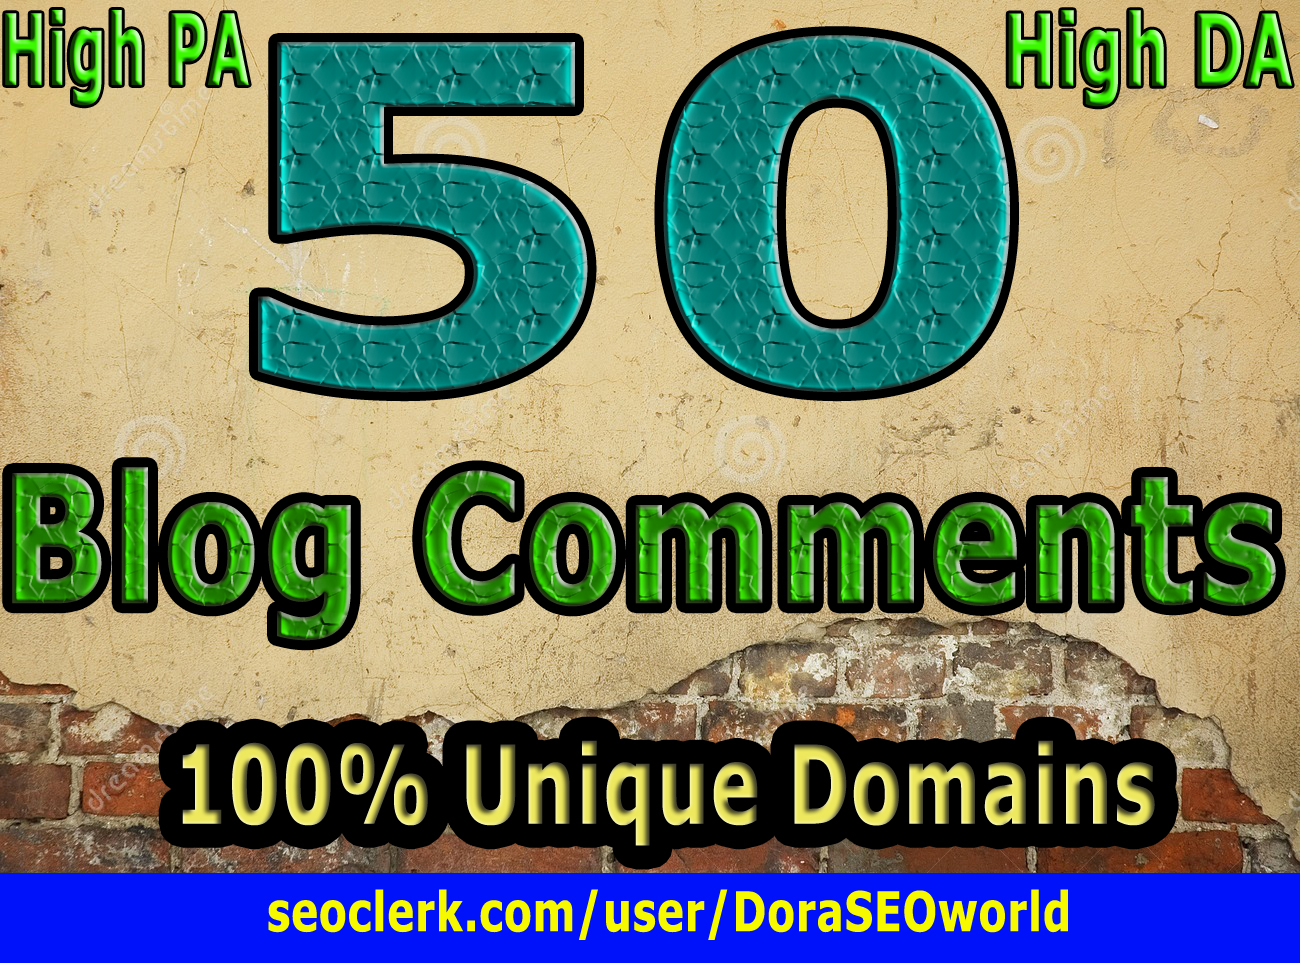 Manually create 50 PR2 to 7 backlinks on Unique Domains